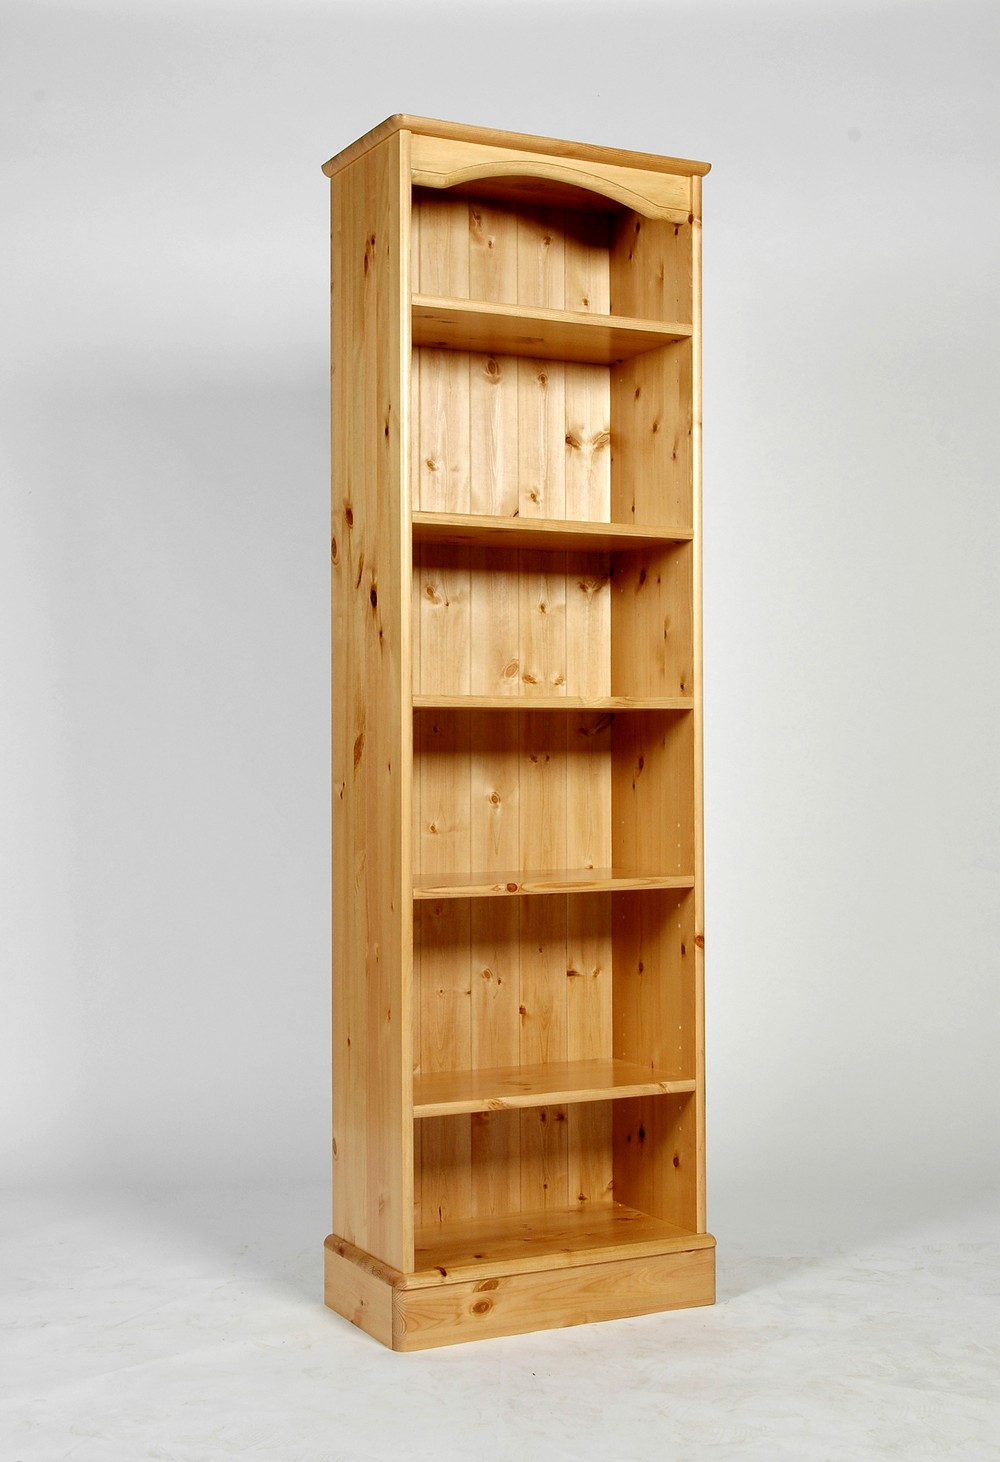 Baltic Pine Furniture Tall Narrow Bookcase Bookshelf Slim